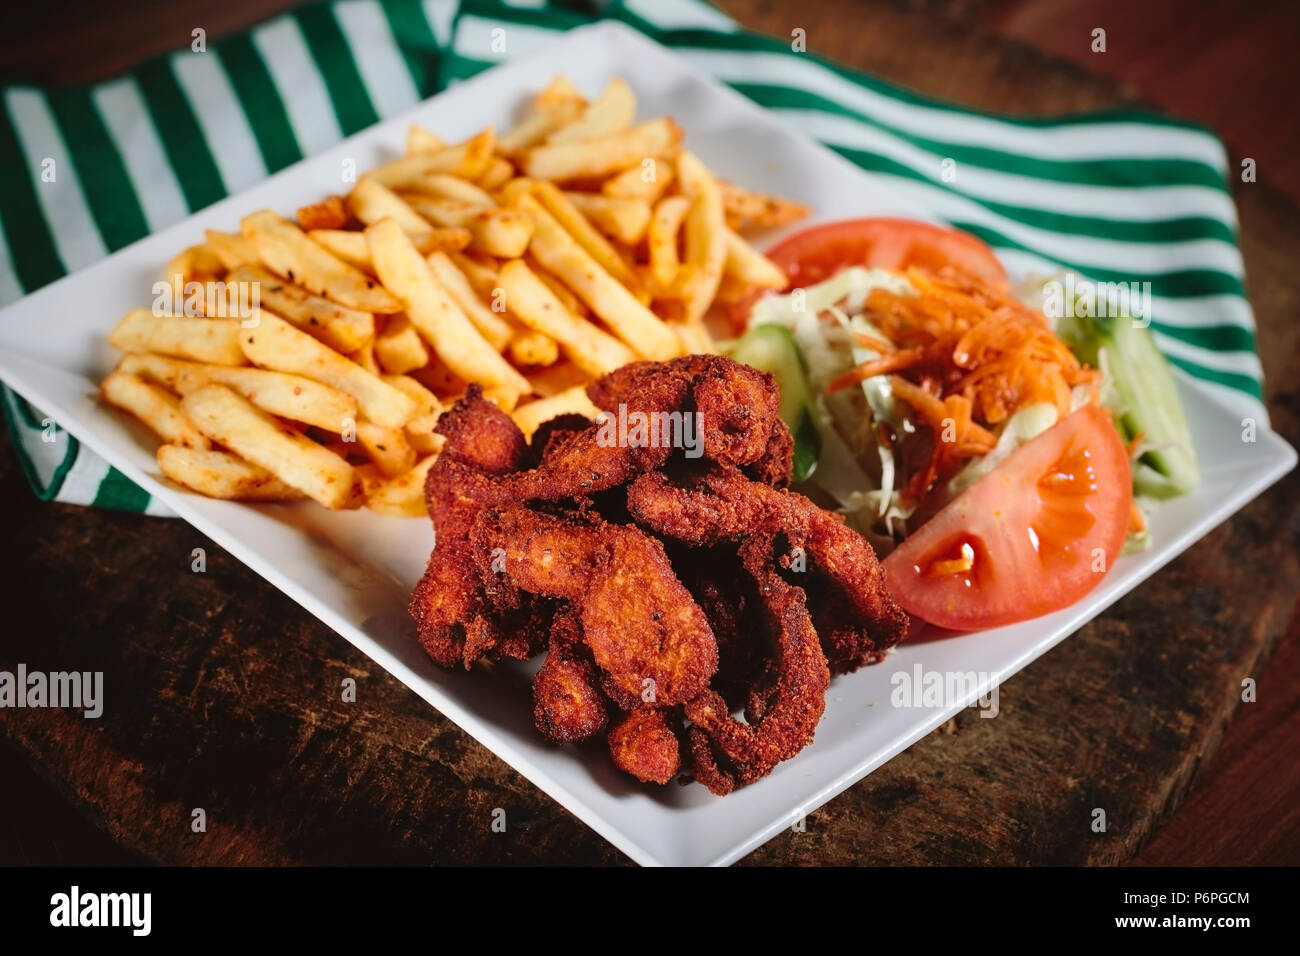 Fried chicken with cajun spices and potatoes - Stock Image